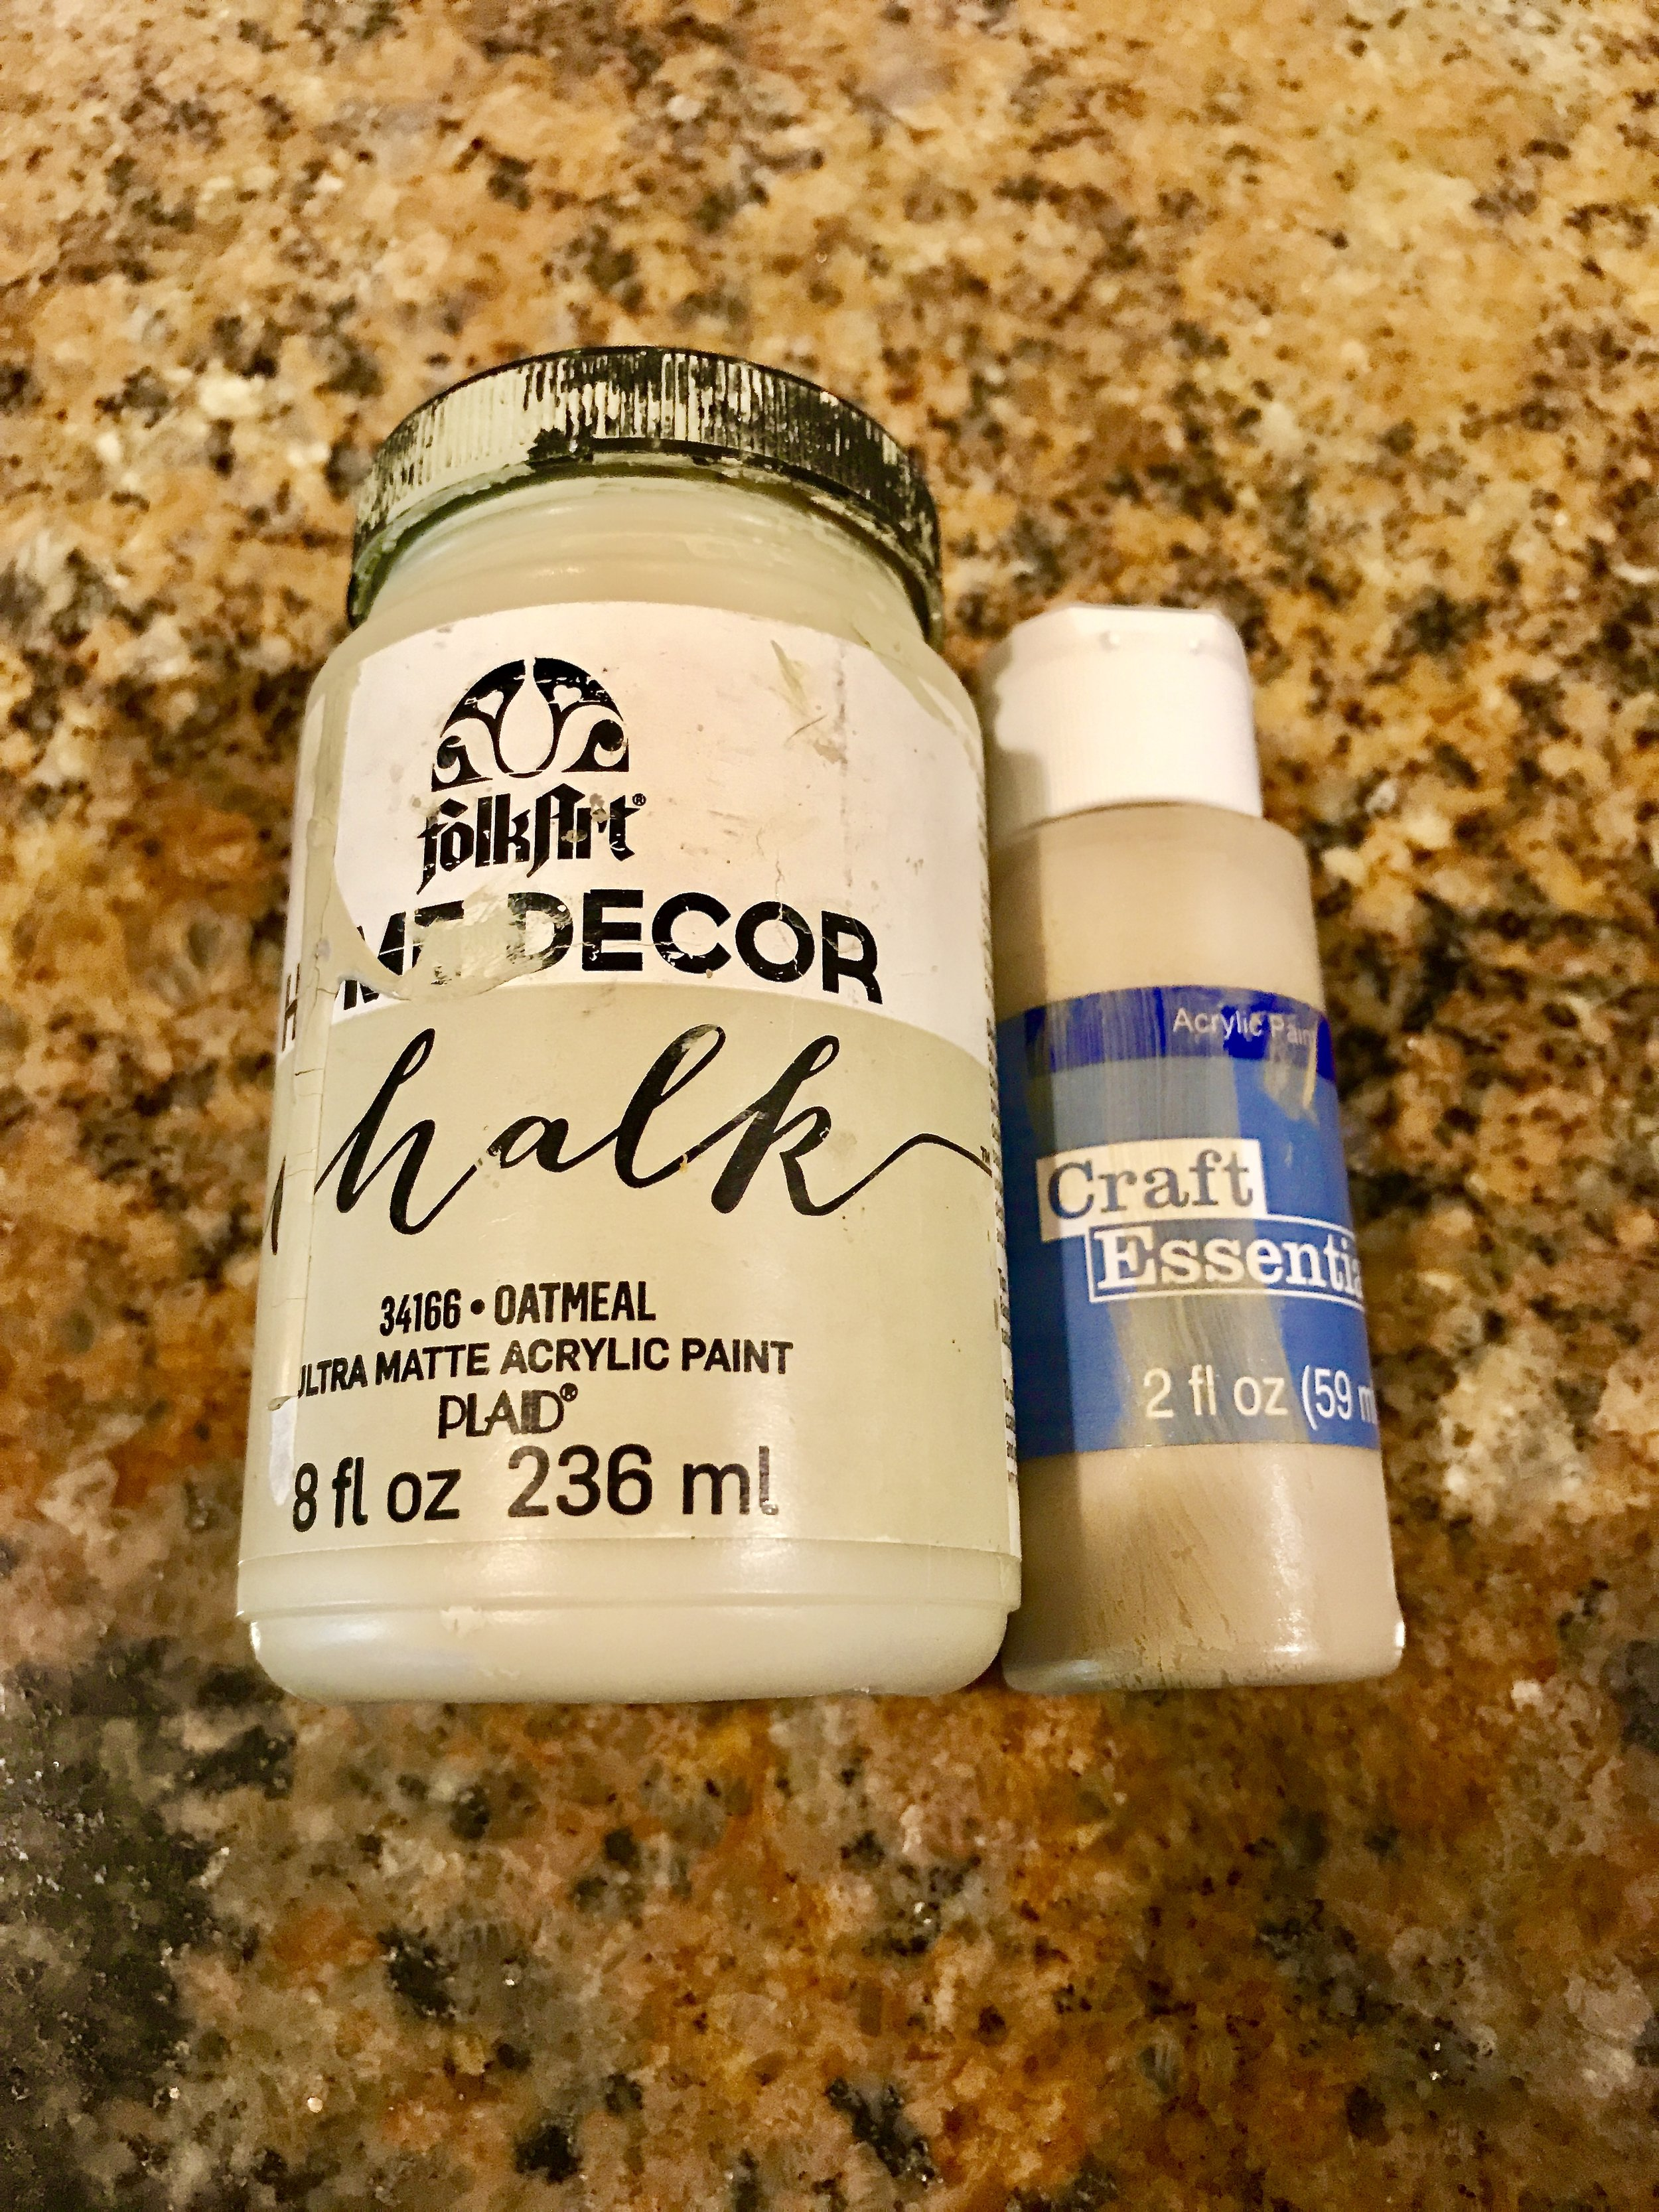 These are the shades I used in Step #2 -Oatmeal and yellow beige. The Oatmeal has a green cast to it. The walls of my closet are a gold-green hue. These shades mimic layers of paint found on many old pieces.